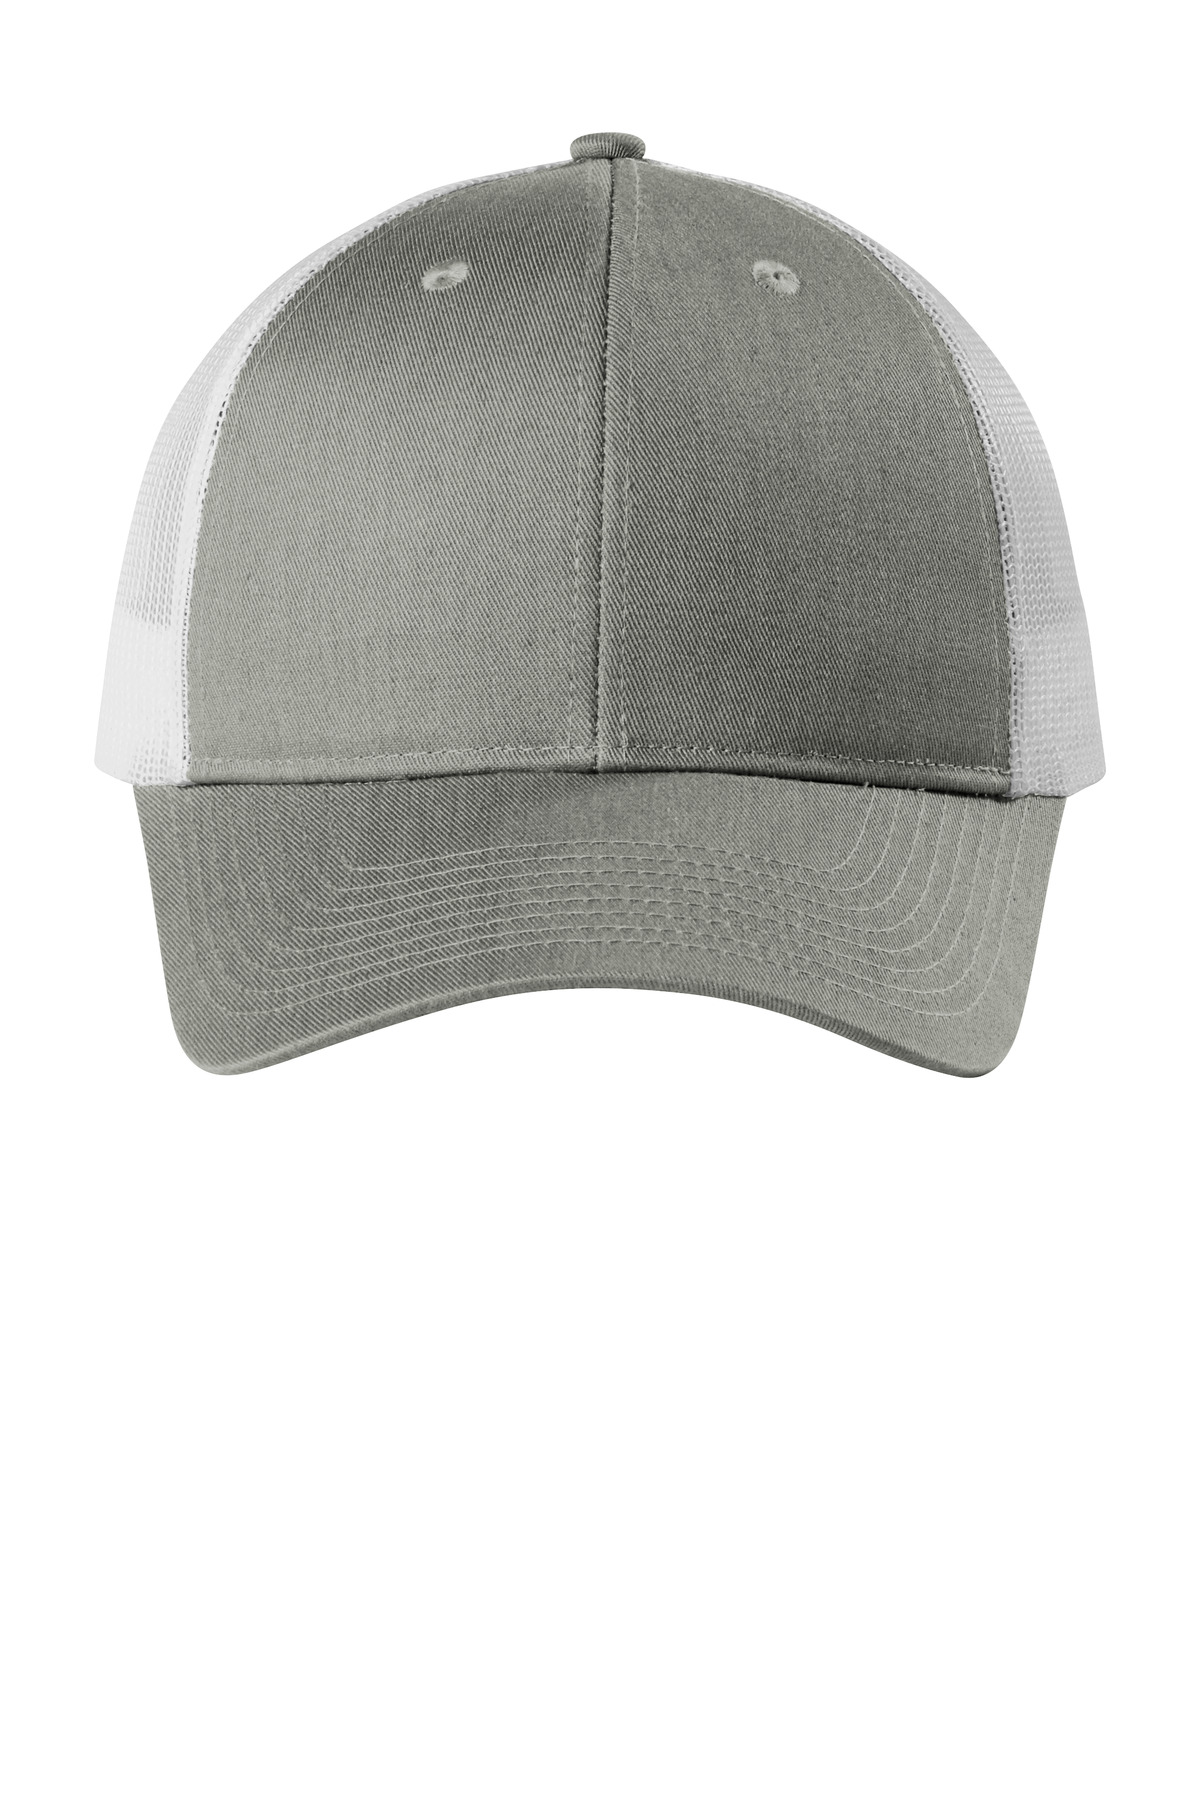 Port Authority  ®  Low-Profile Snapback Trucker Cap. C112LP - Heather Grey/ White